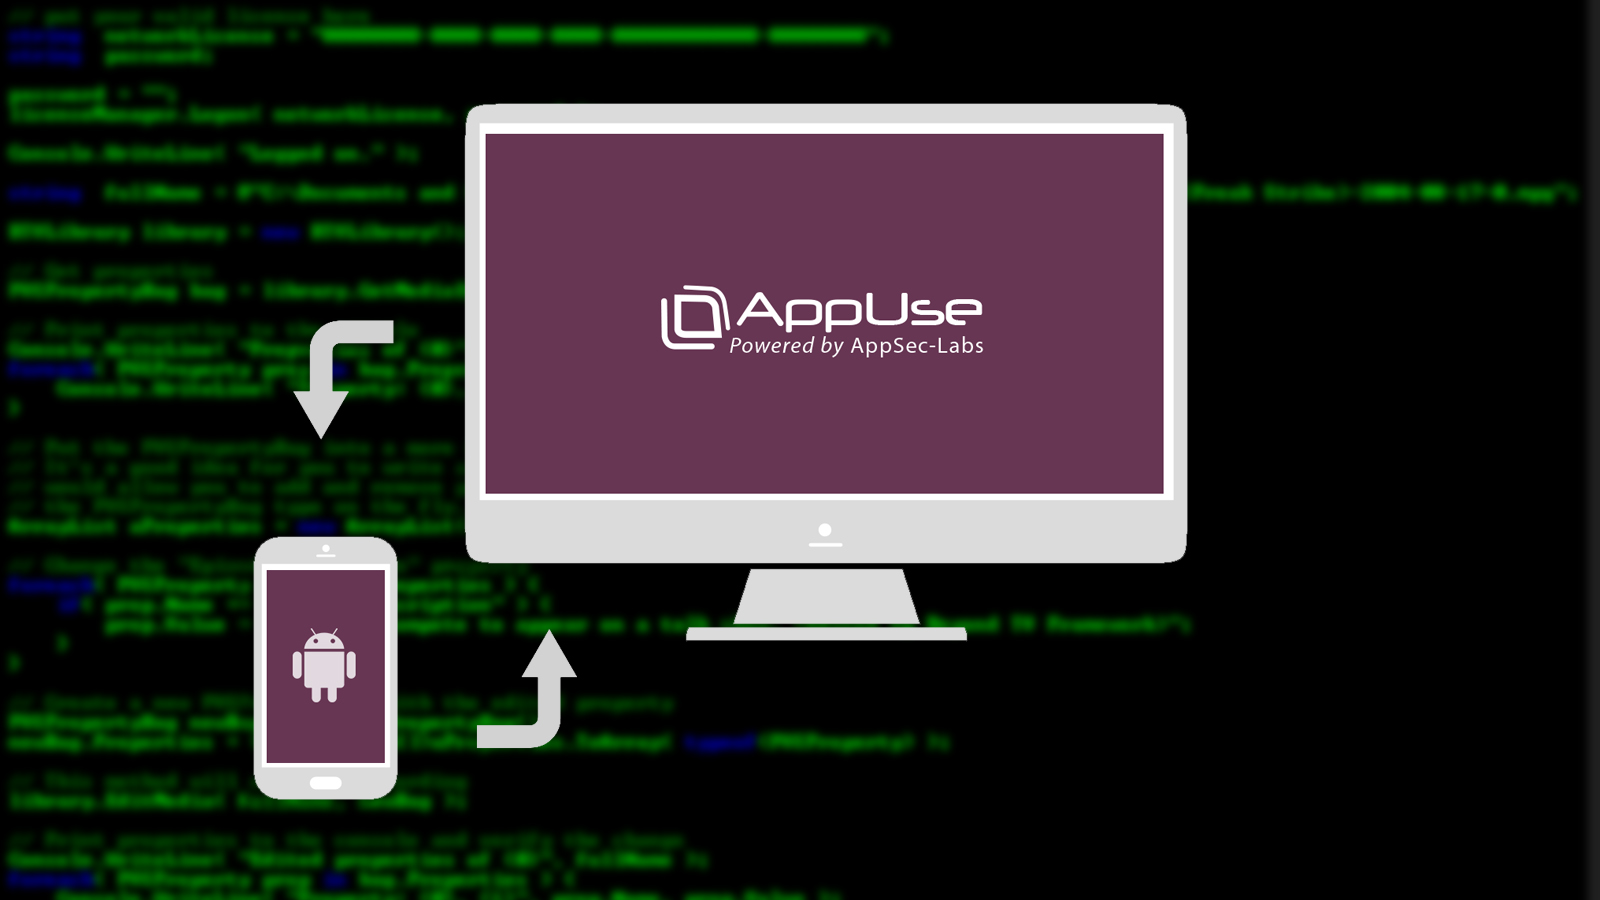 AppUse - Android Pentest Platform Unified Standalone Environment